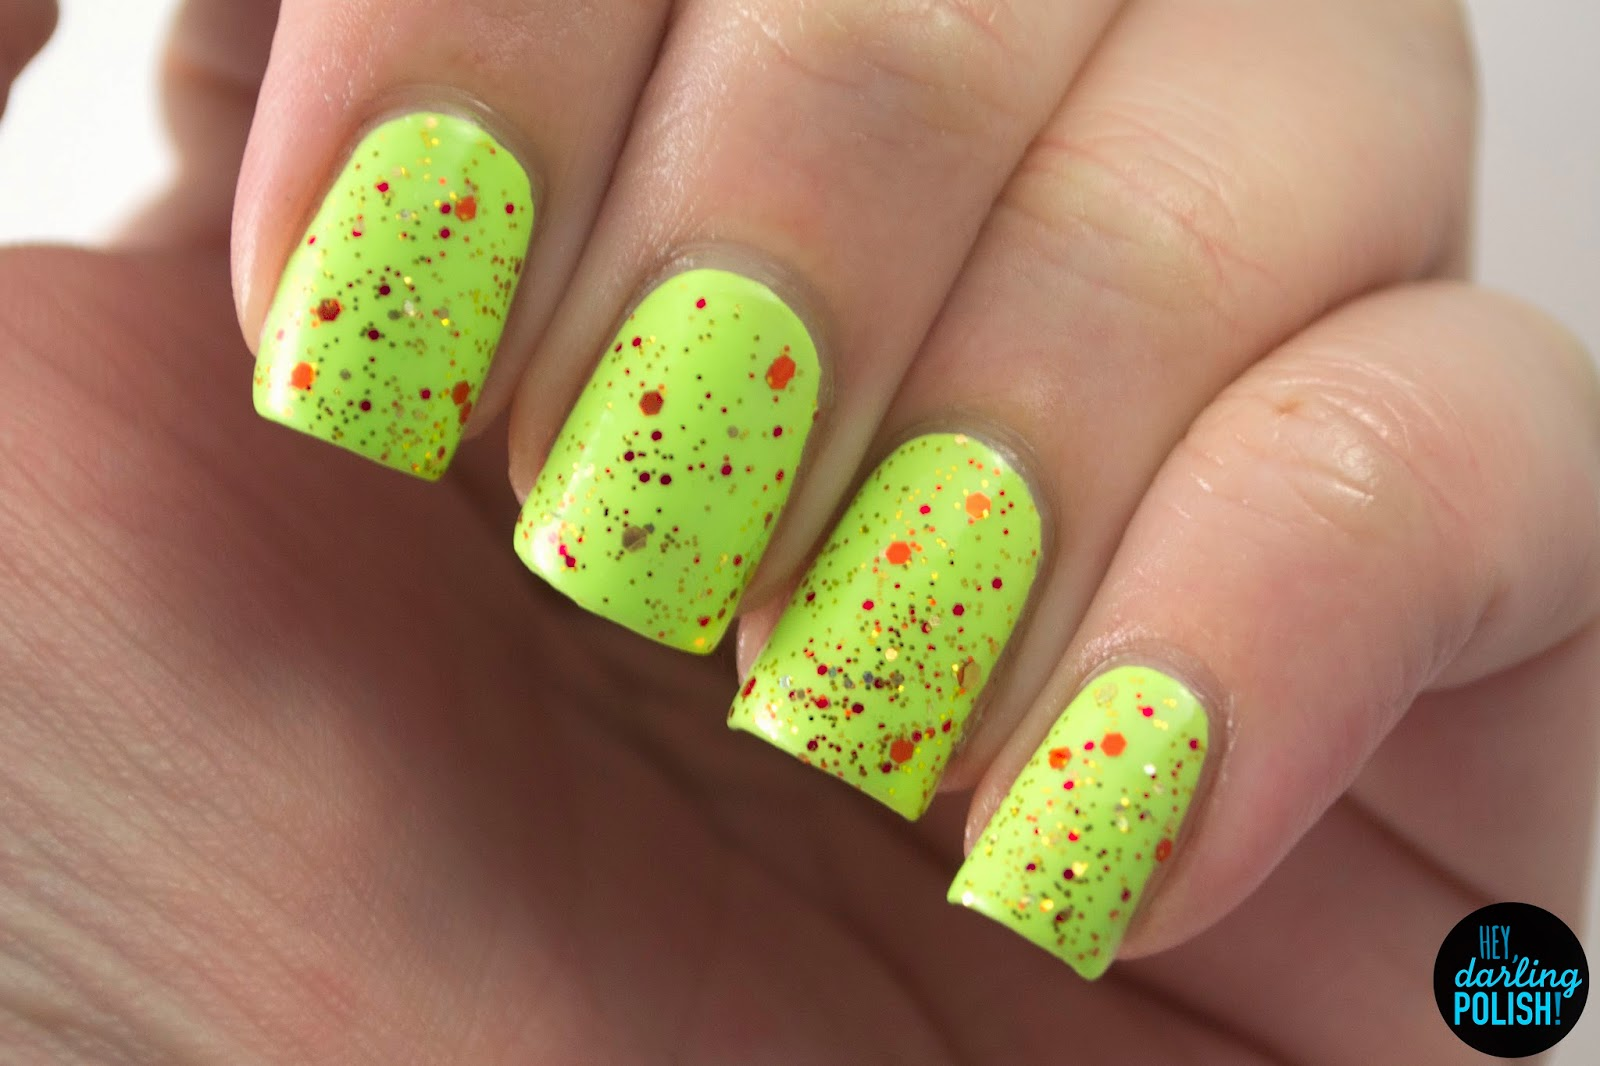 dragon's gold, green, orange, gold, nails, nail polish, polish, indie, indie polish, indie nail polish, hey darling polish, a study in polish, glitter,